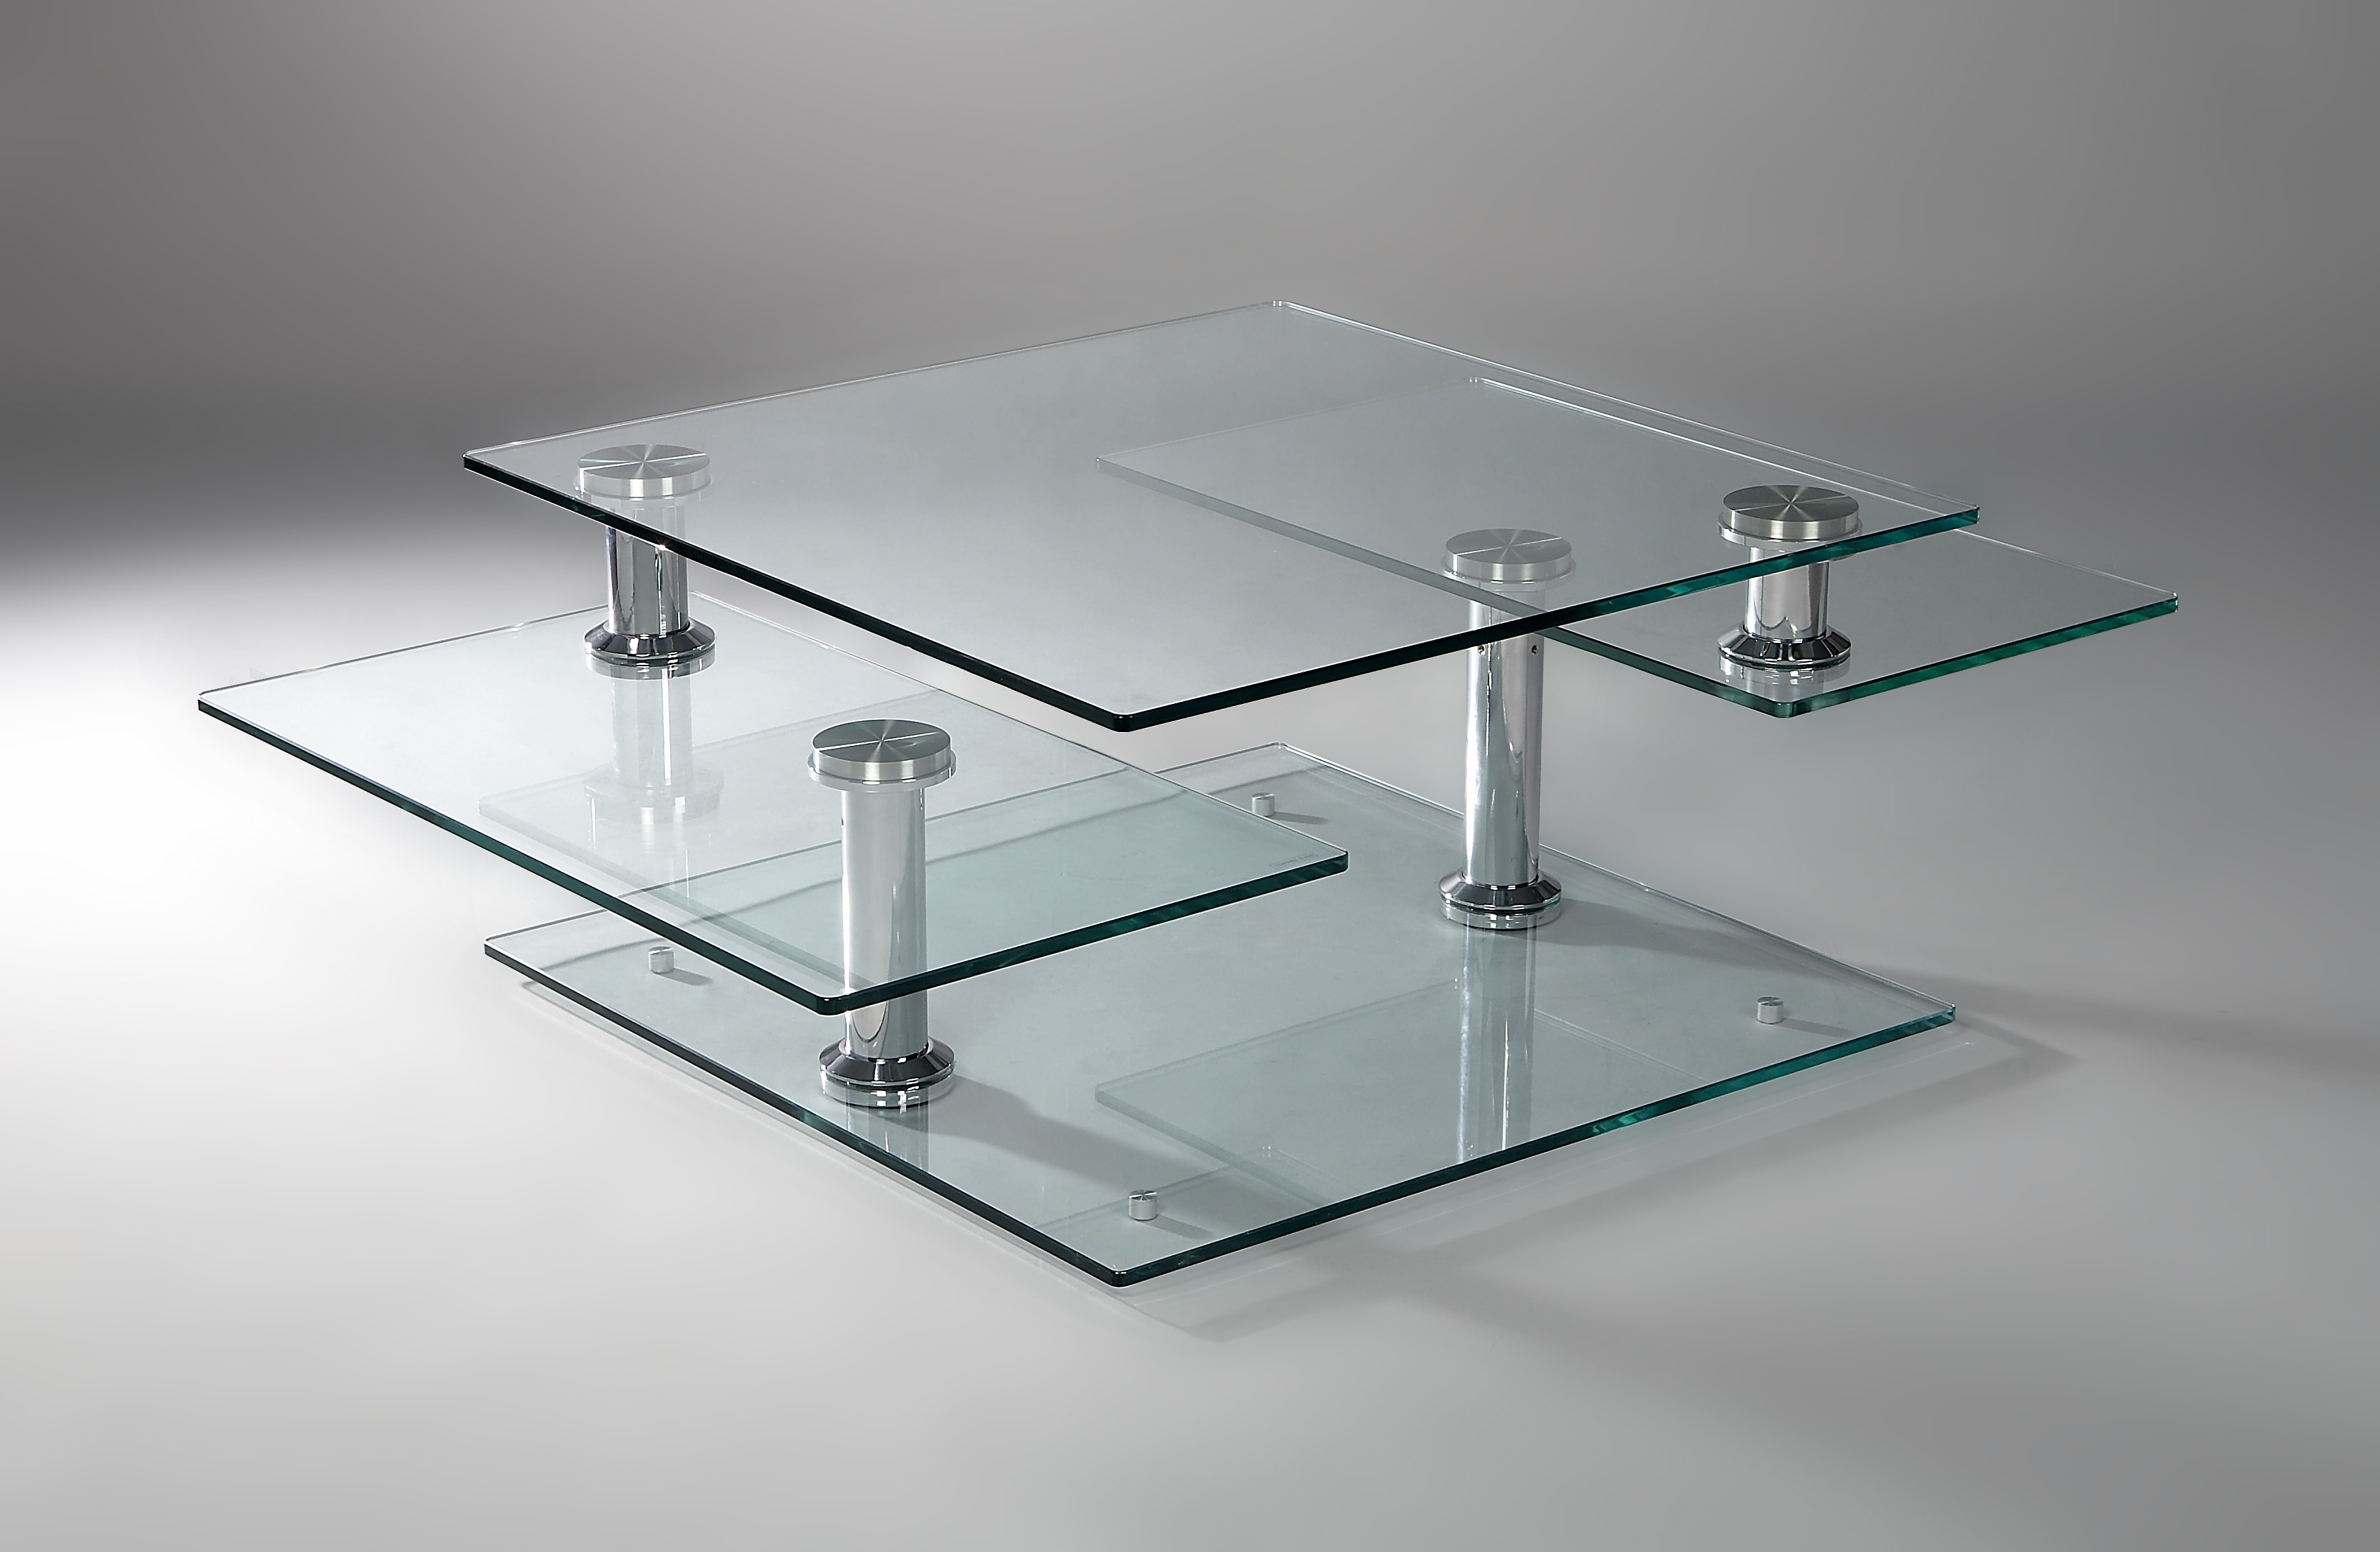 Table basse verre modulable design chateau d 39 ax marseille 13 - Table basse de salon en verre modulable ...